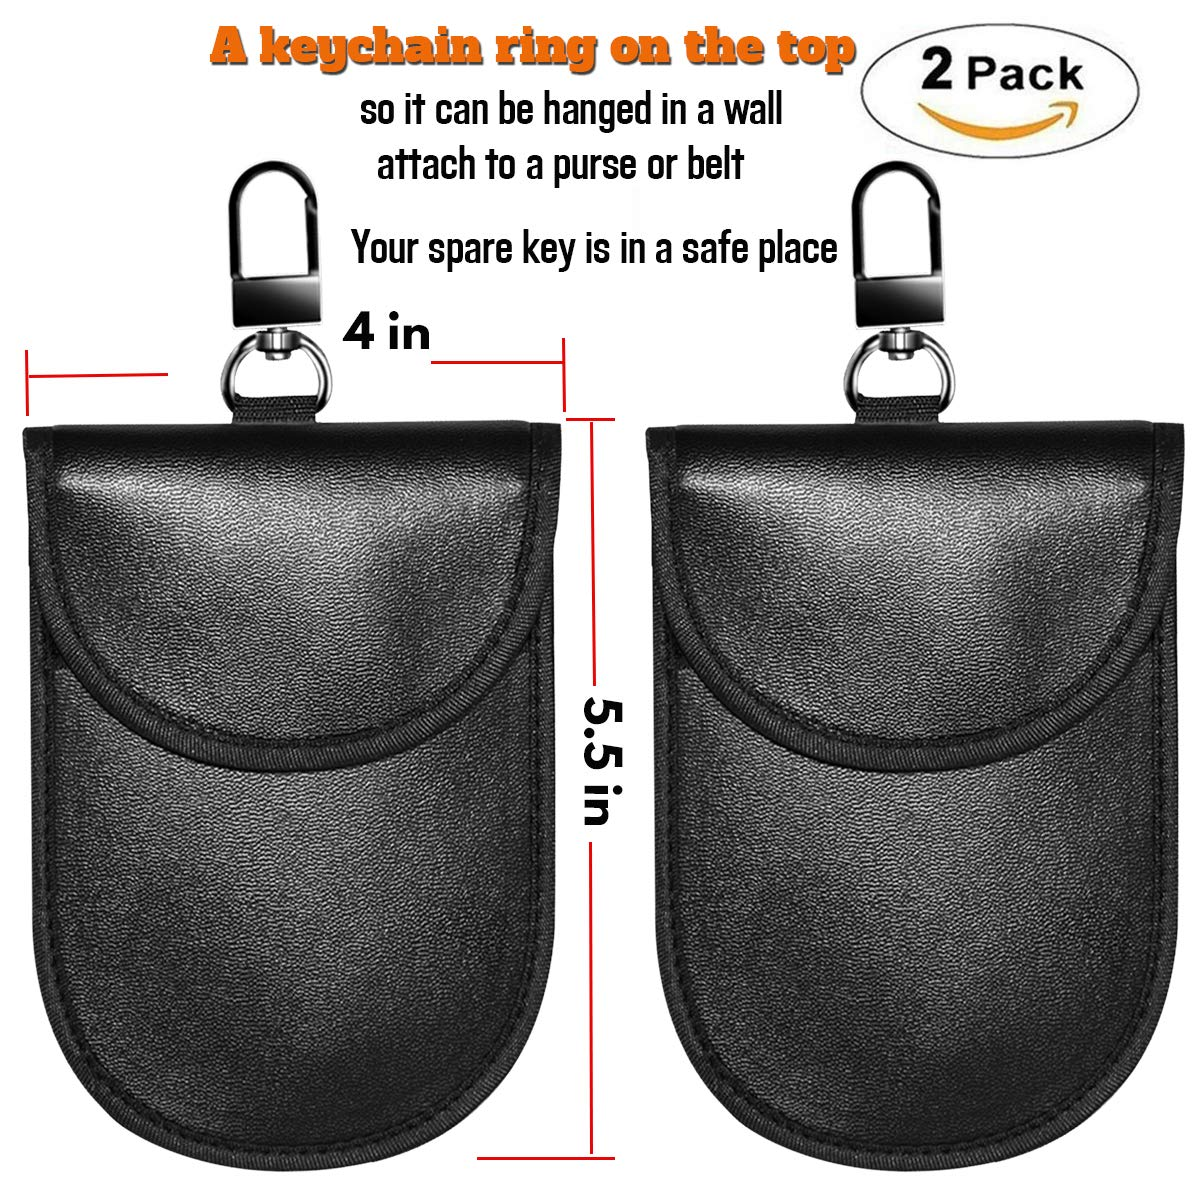 Faraday Bag Faraday Key Fob Protector, Car RFID Signal Blocking Pouch Protector, Faraday Cage Fob Guard for Keyless, Cars Security Anti Theft, Anti-Hacking Case RFID WIFI Blocker Box, 2 PACK